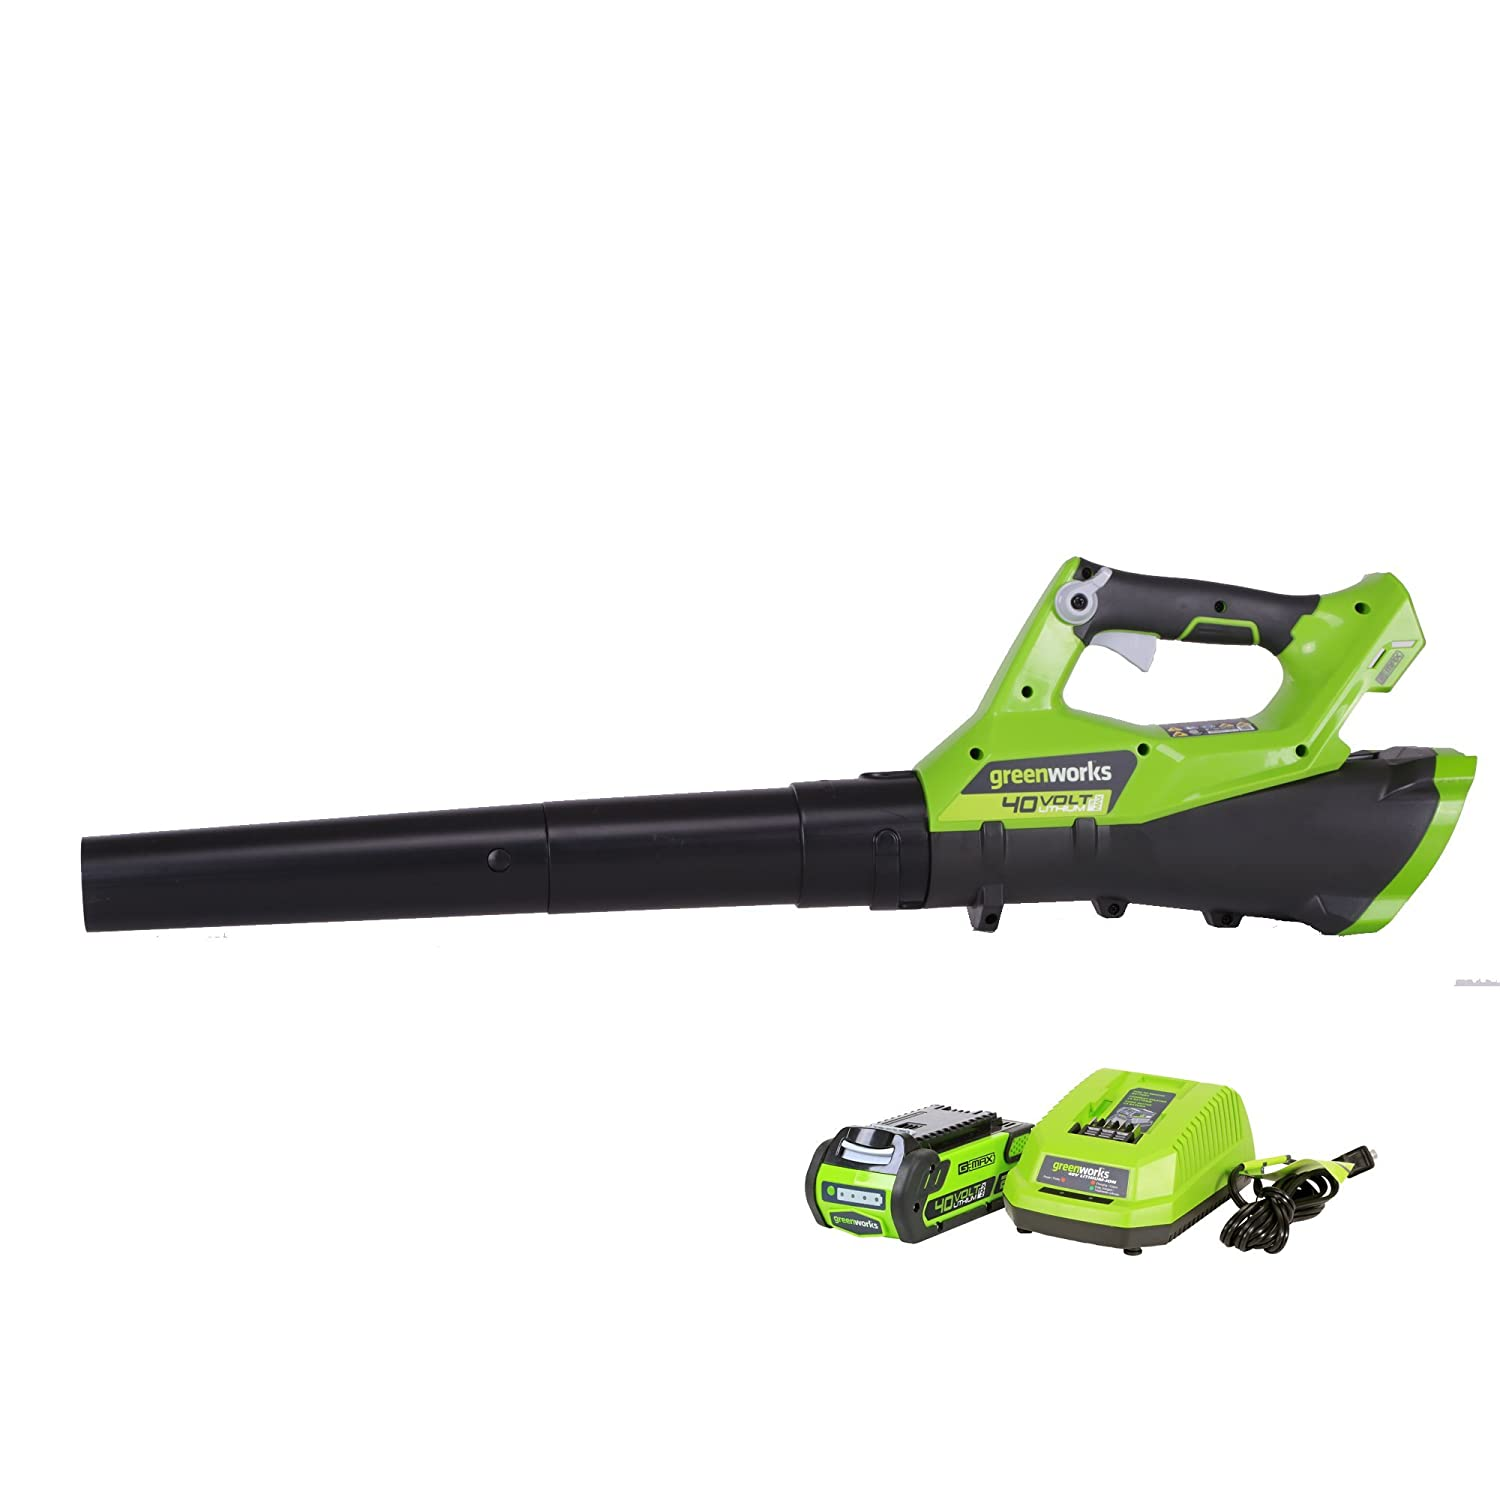 Greenworks 40V Cordless Jet Leaf Blower, 110 MPH – 390 CFM , 2.0 AH Battery Included 2400802